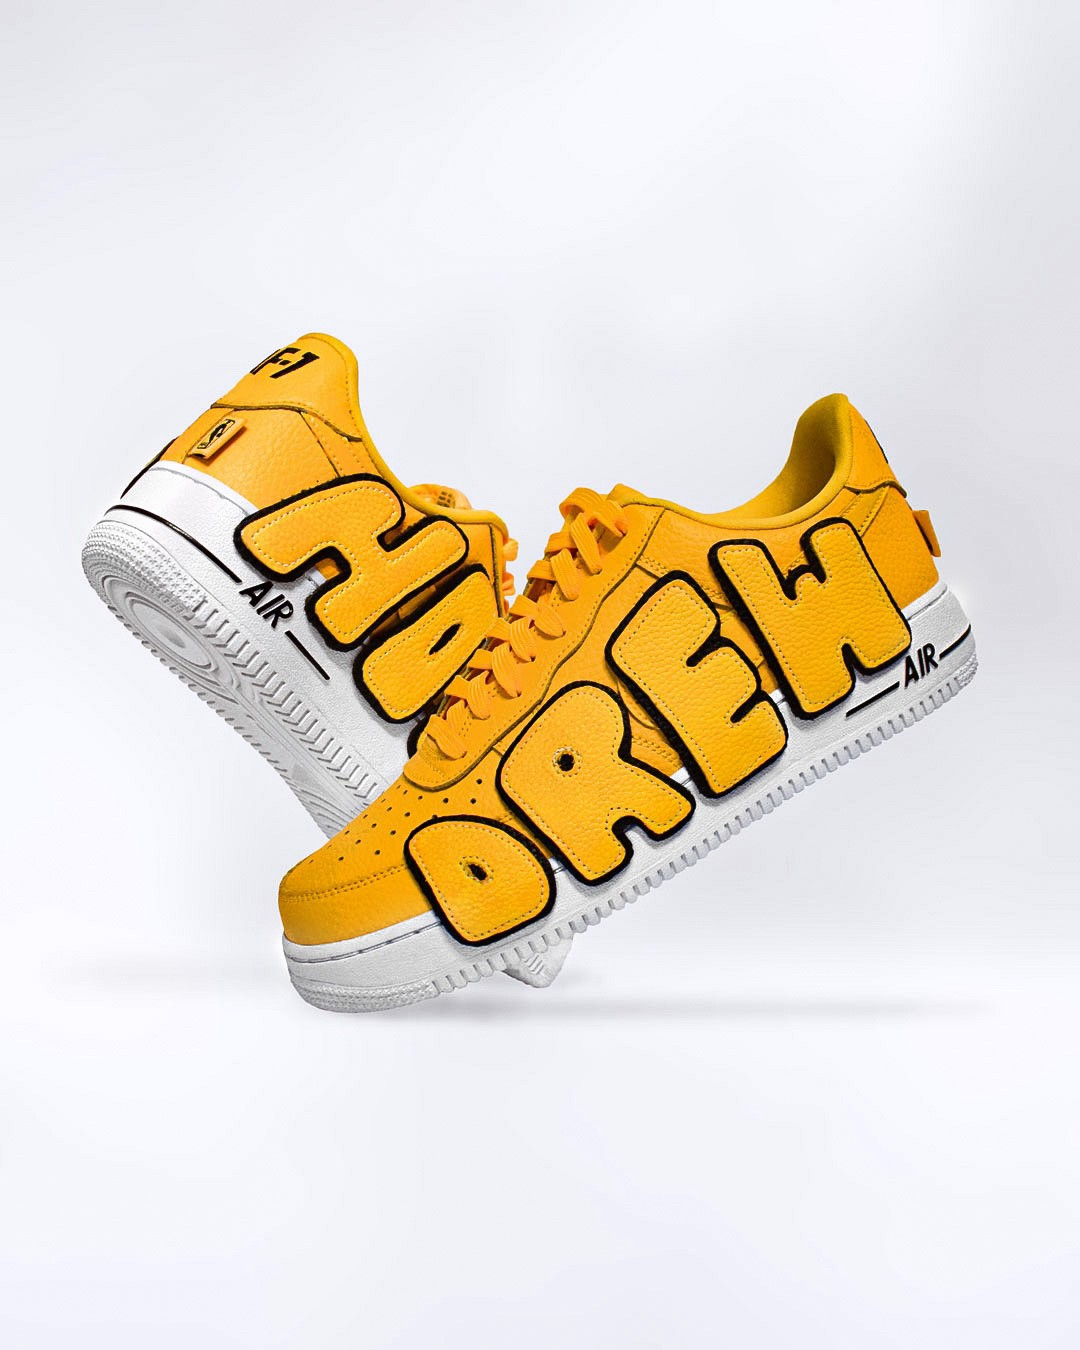 Drew House Custom Nike Air Force 1 Low By Jason Kovac By Jason